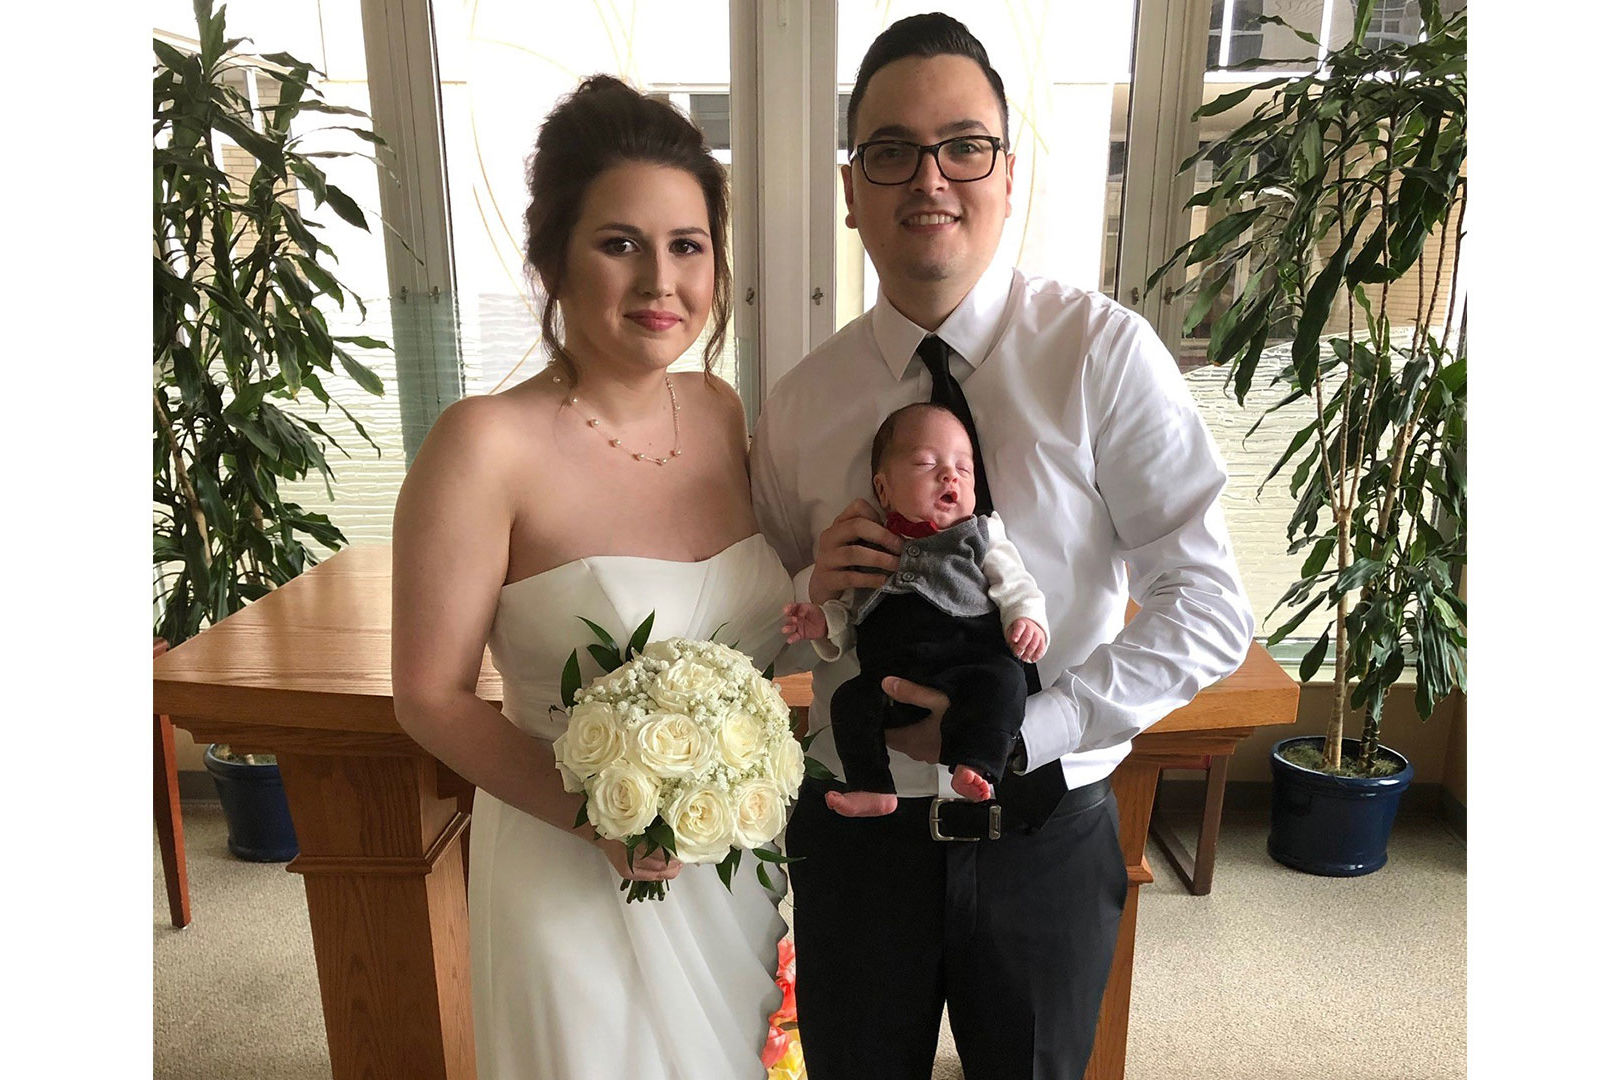 Mom Carries Her Premature Baby Instead of a Bouquet in Emotional Hospital Wedding